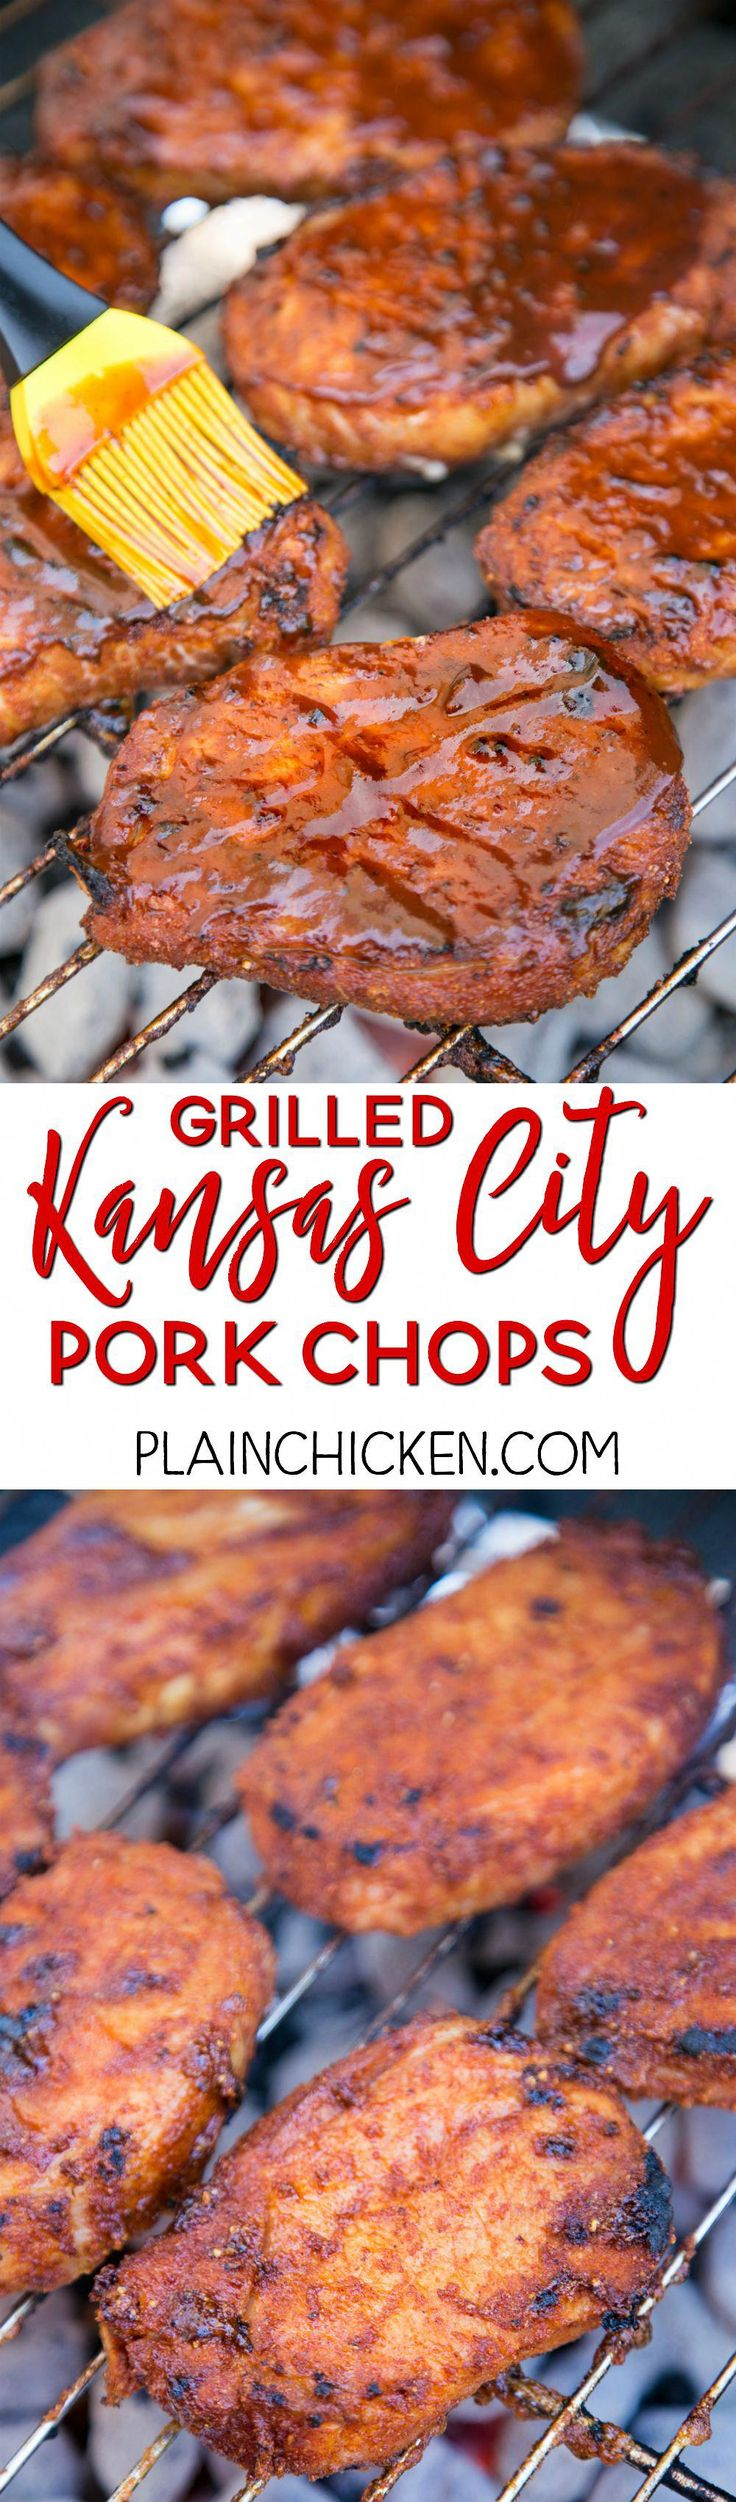 Grilled Kansas City Pork Chops – THE BEST pork chops! Season pork chops with an …